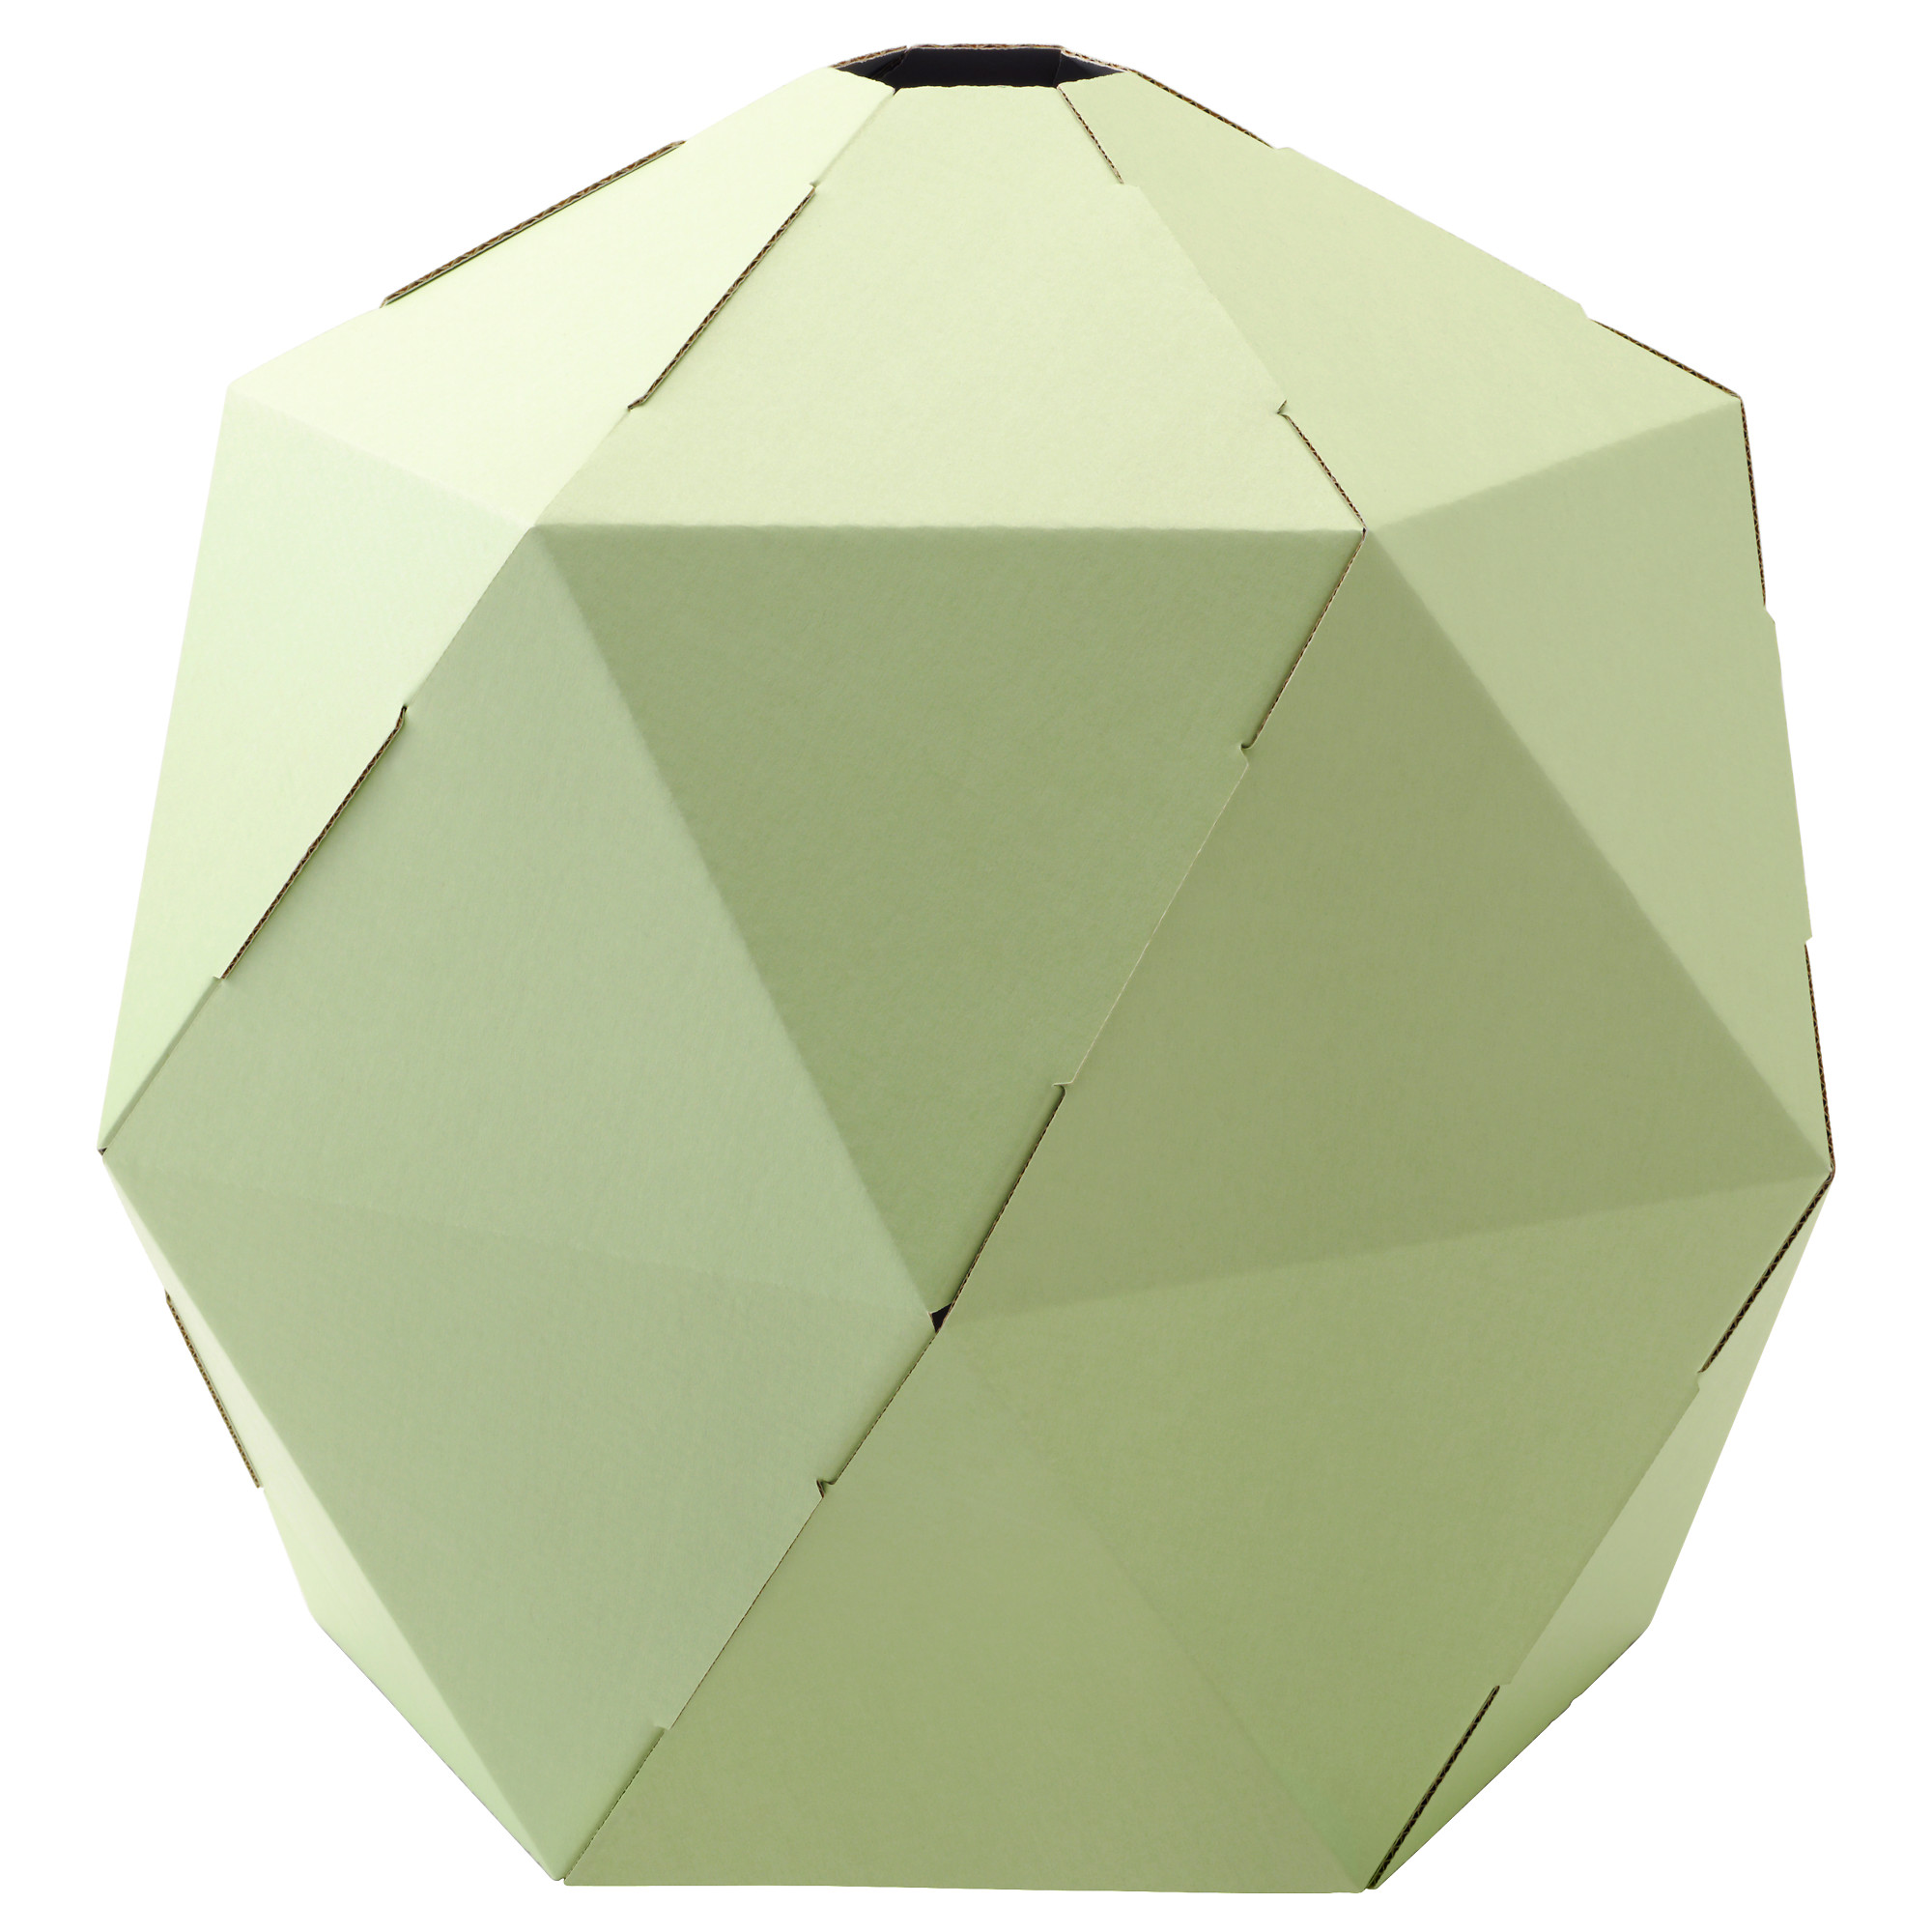 joxtorp pendant lamp shade light green diameter 17 height 15 diameter - Suspension Origami Ikea